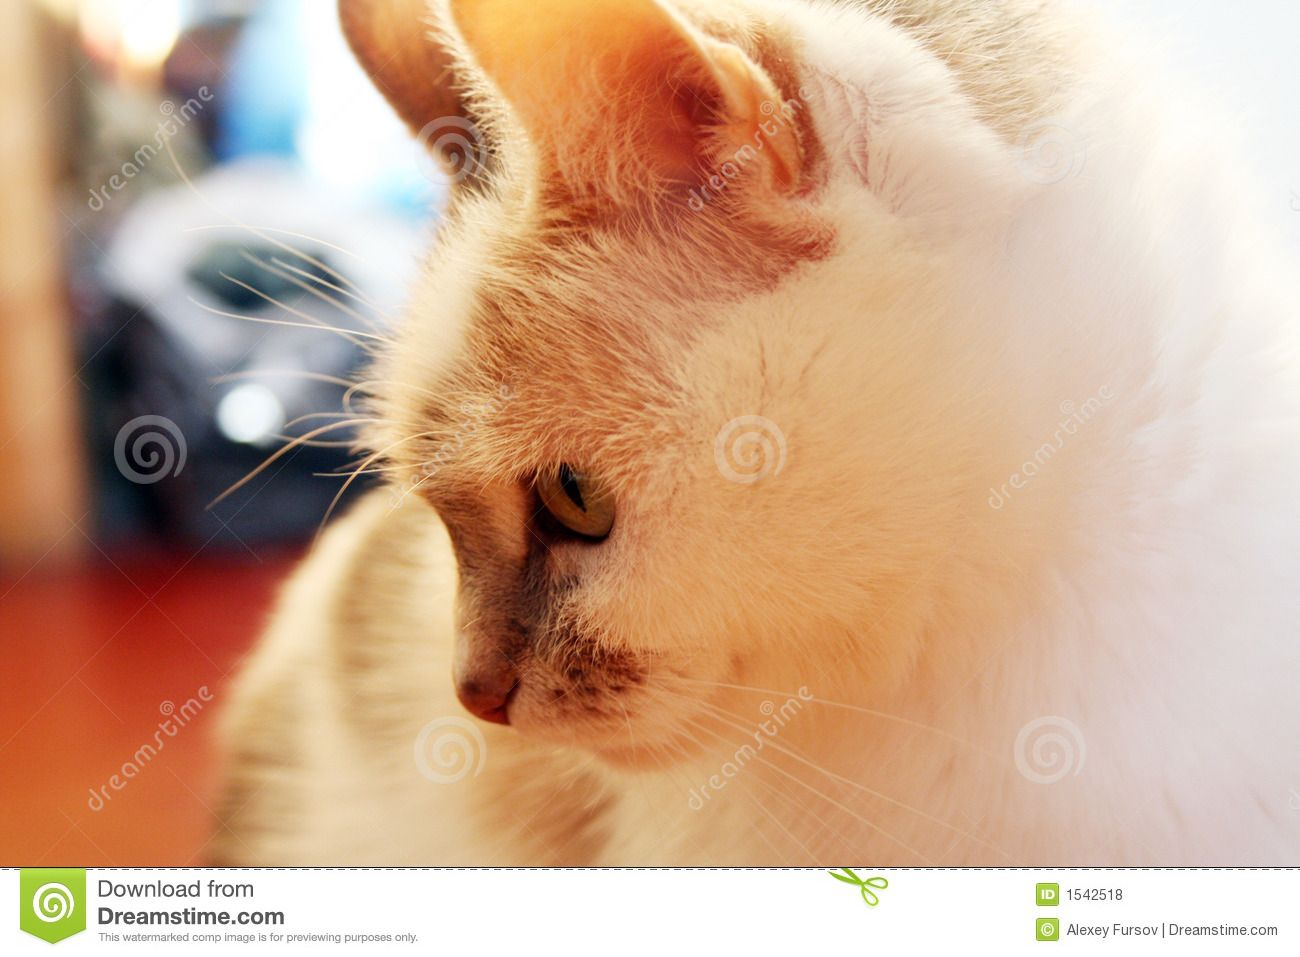 cat download from over 28 million high quality stock photos